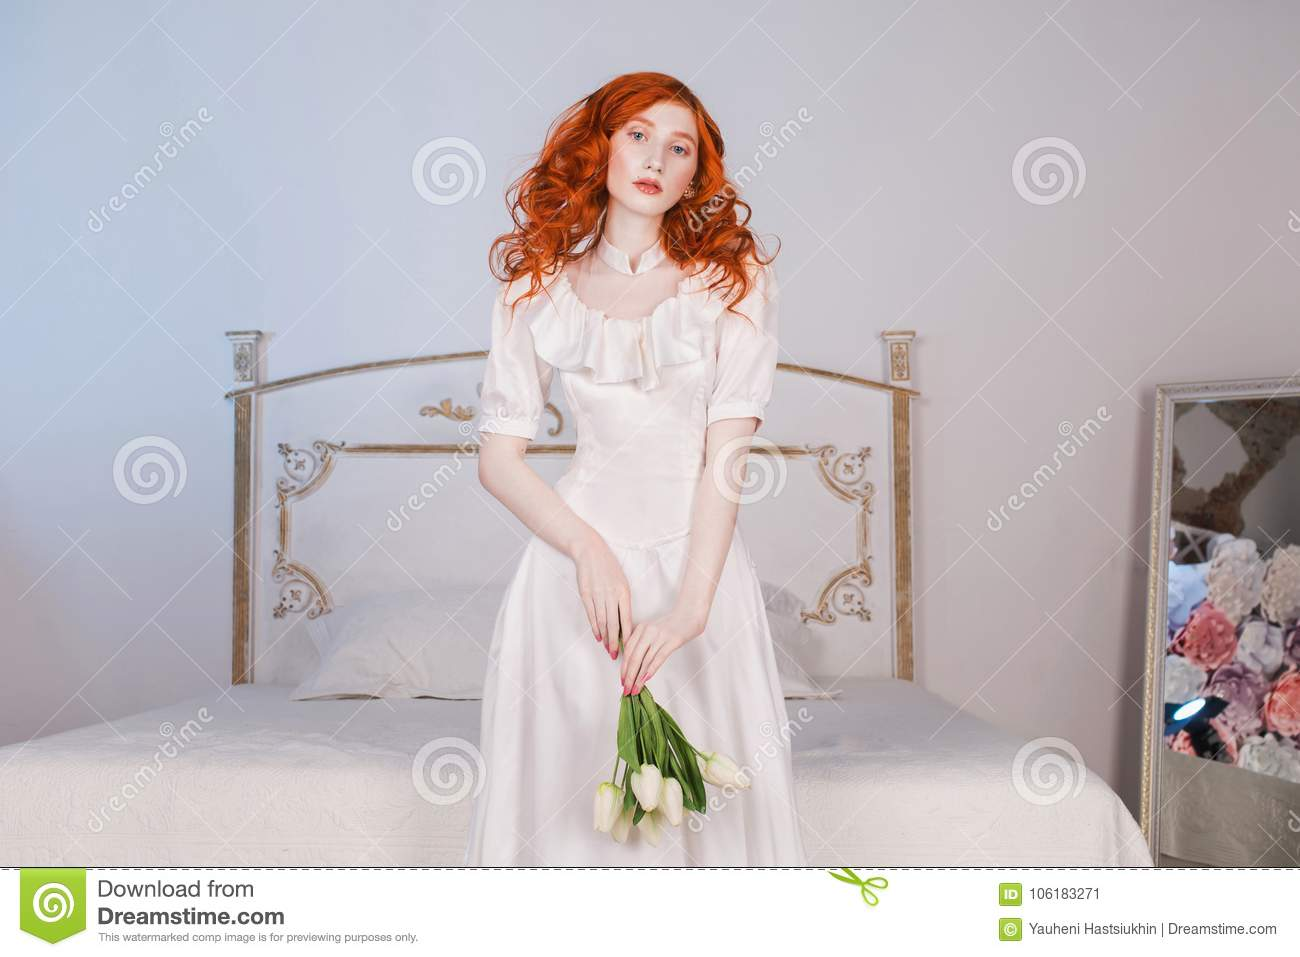 Beautiful Girl With Red Hair And Natural Make Up Stock Image